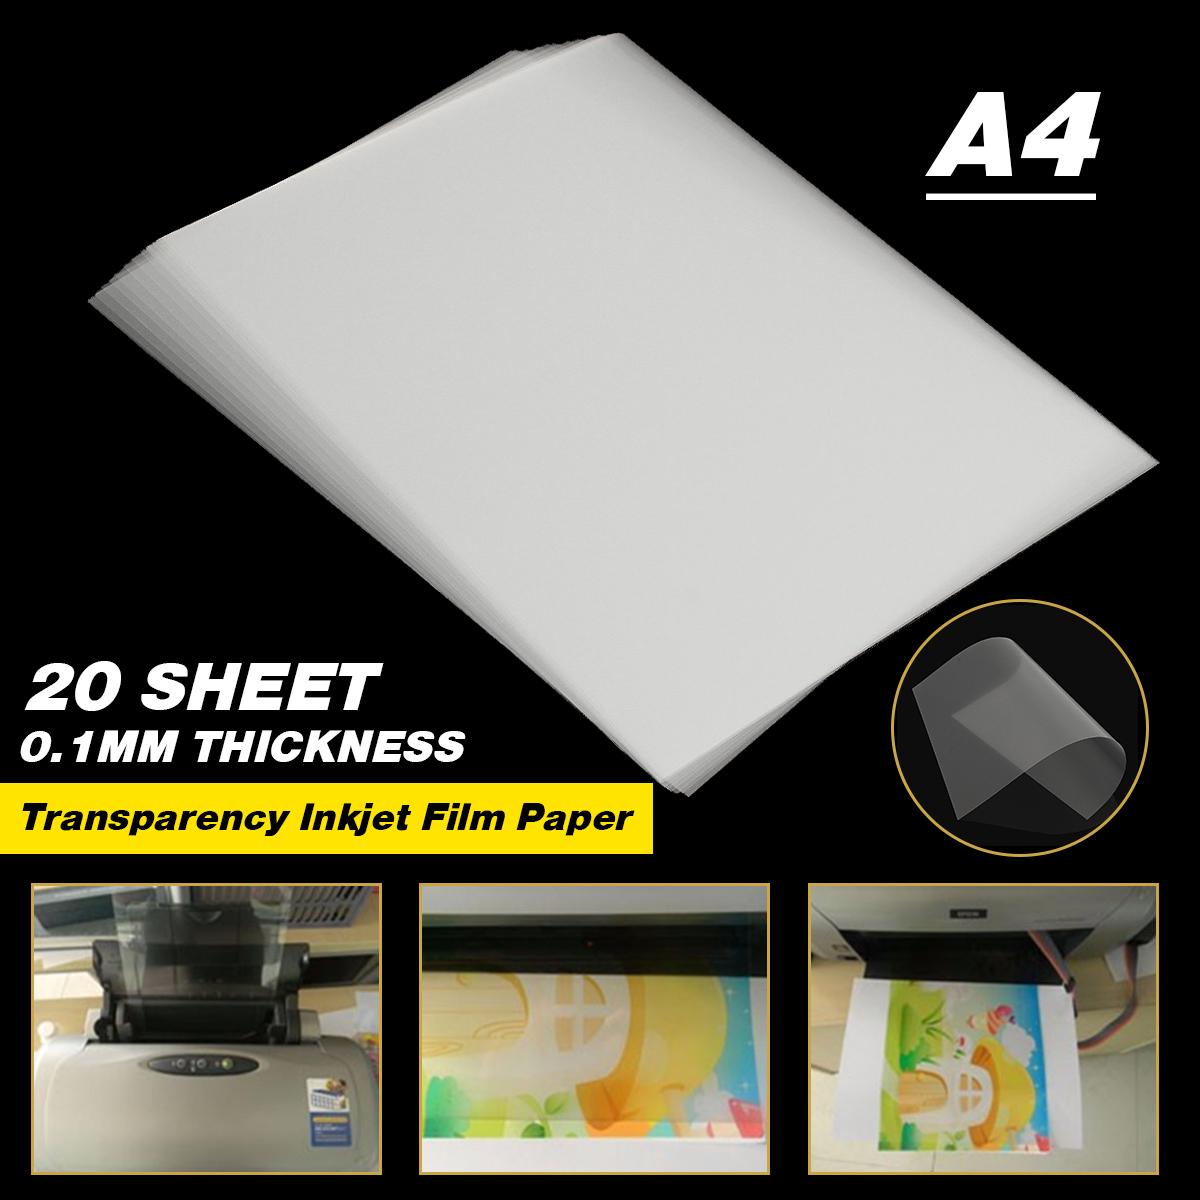 20 Sheet Screen Printing Transparency Inkjet Film Paper PCB Print Stencil Design Thickness 0.12mm Inkjet Film Retains The Ink